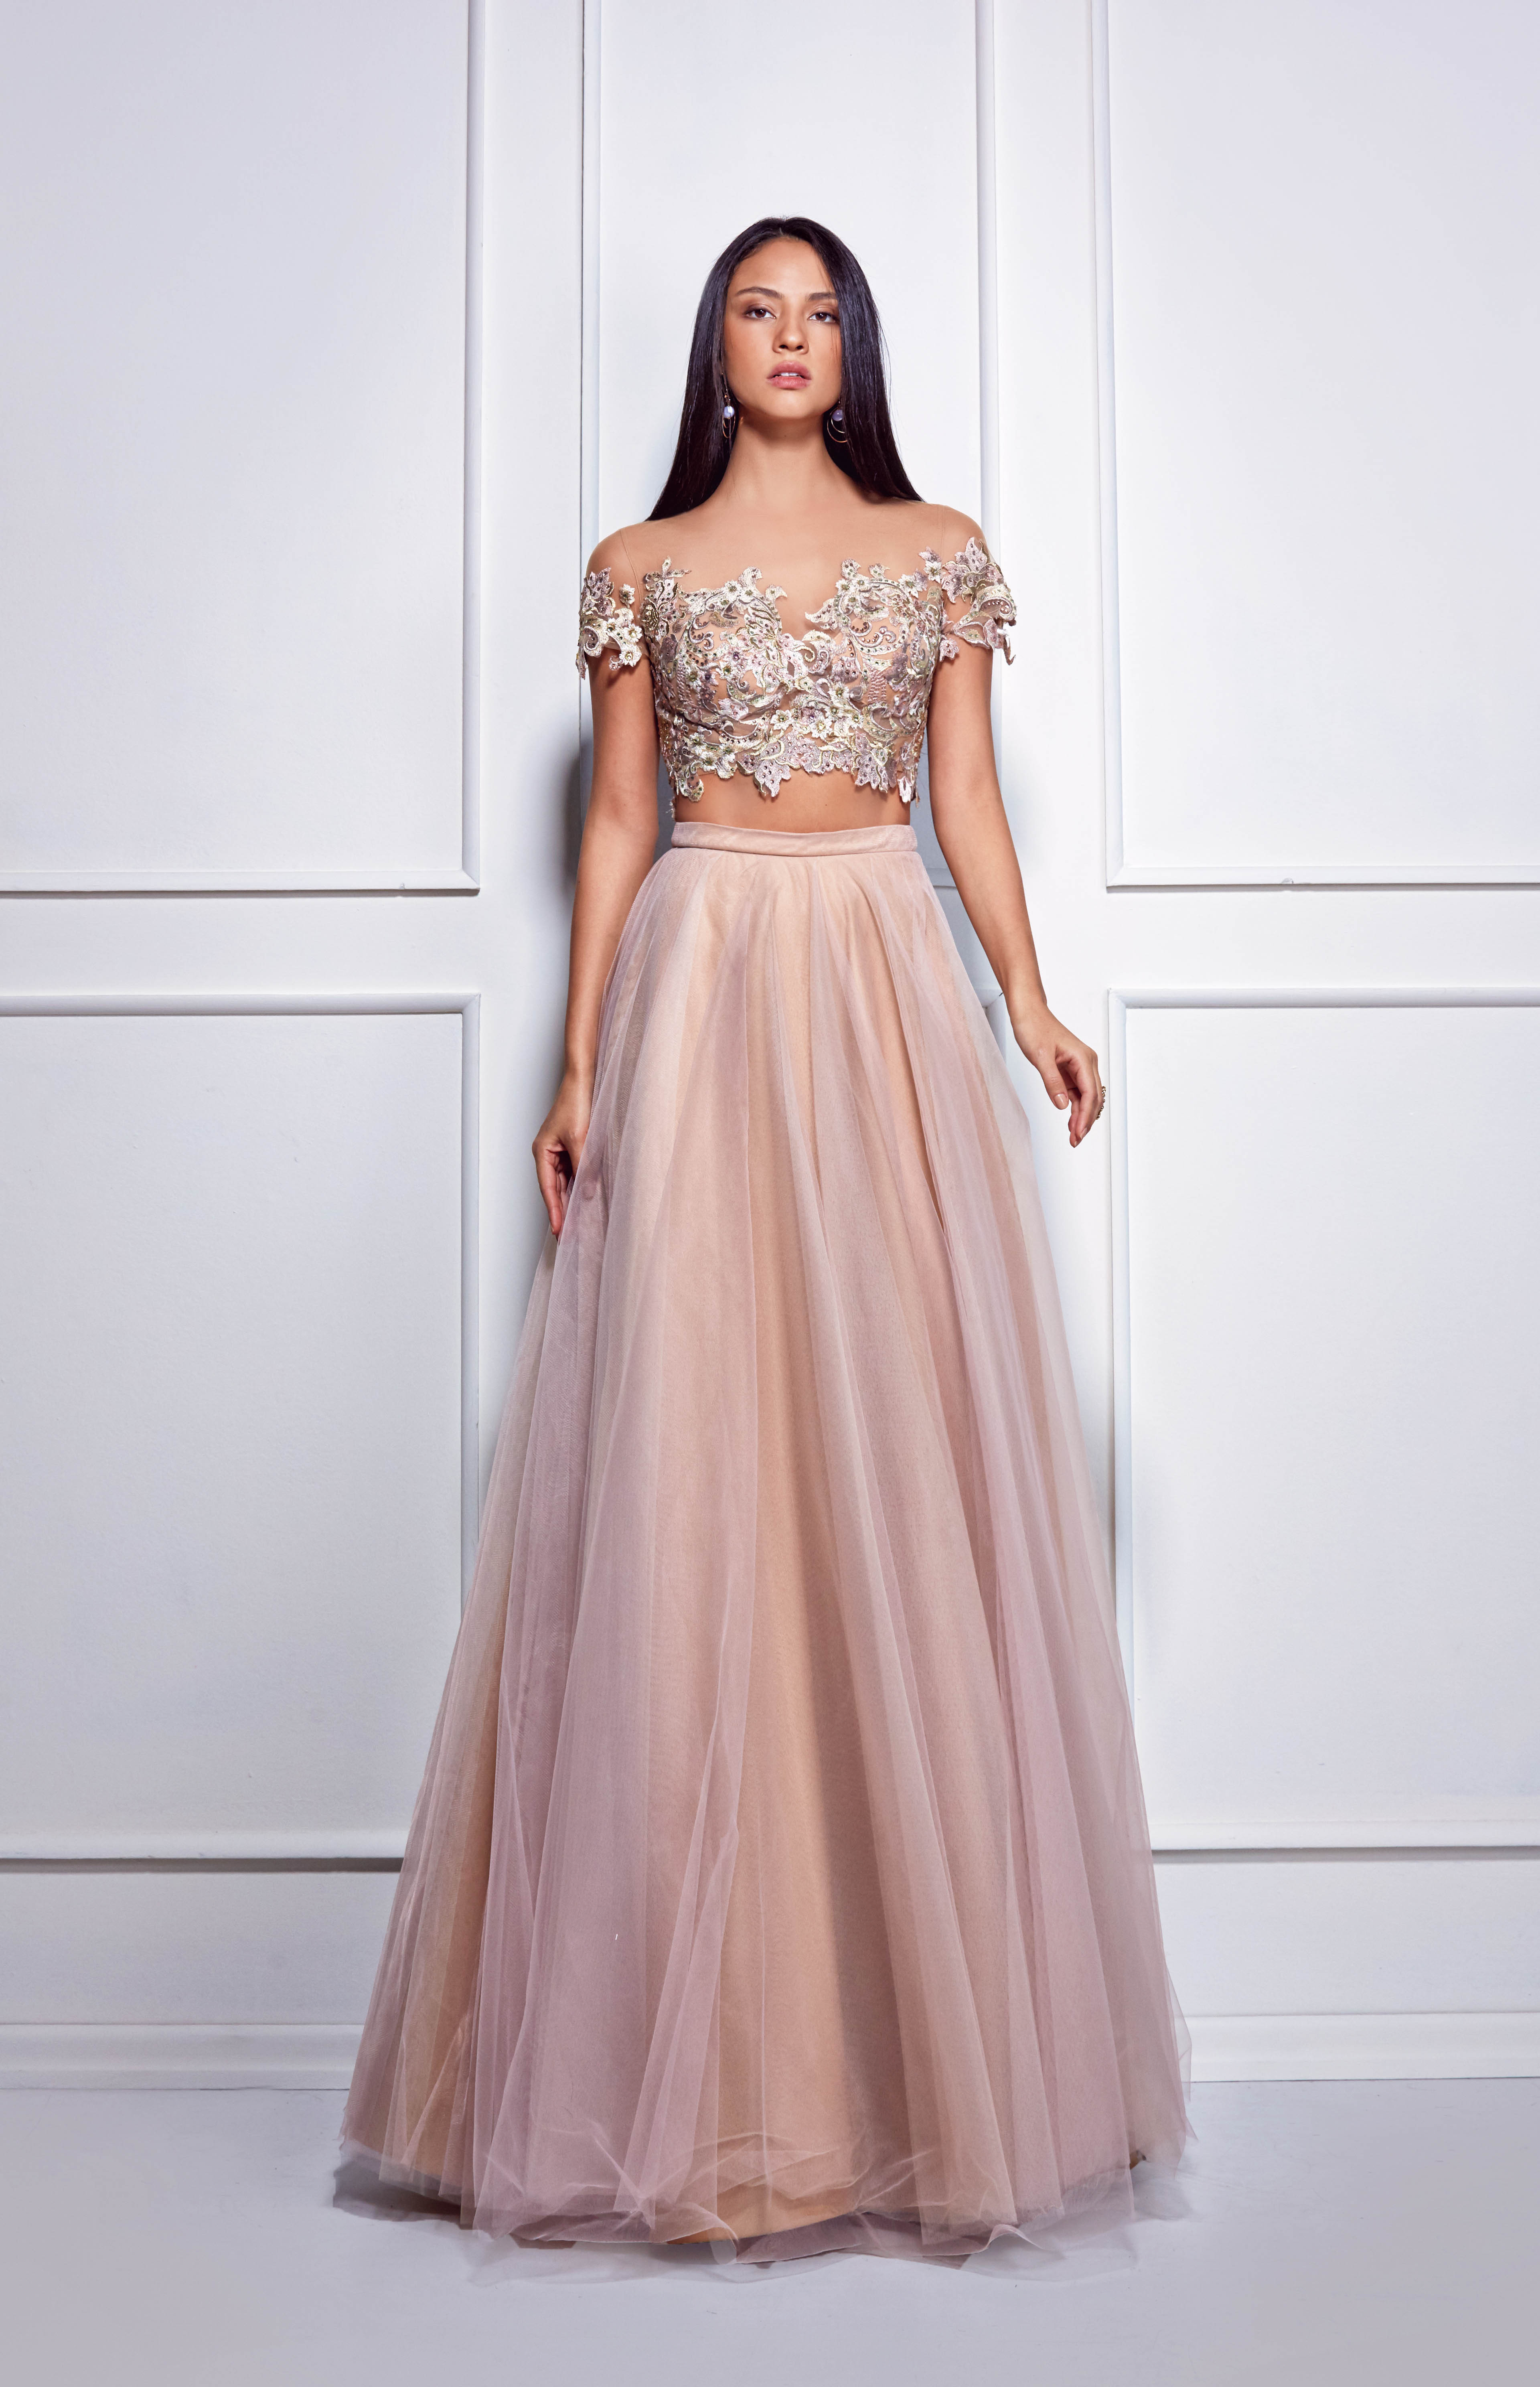 Old Fashioned Evening Gowns Calgary Motif - Wedding and flowers ...